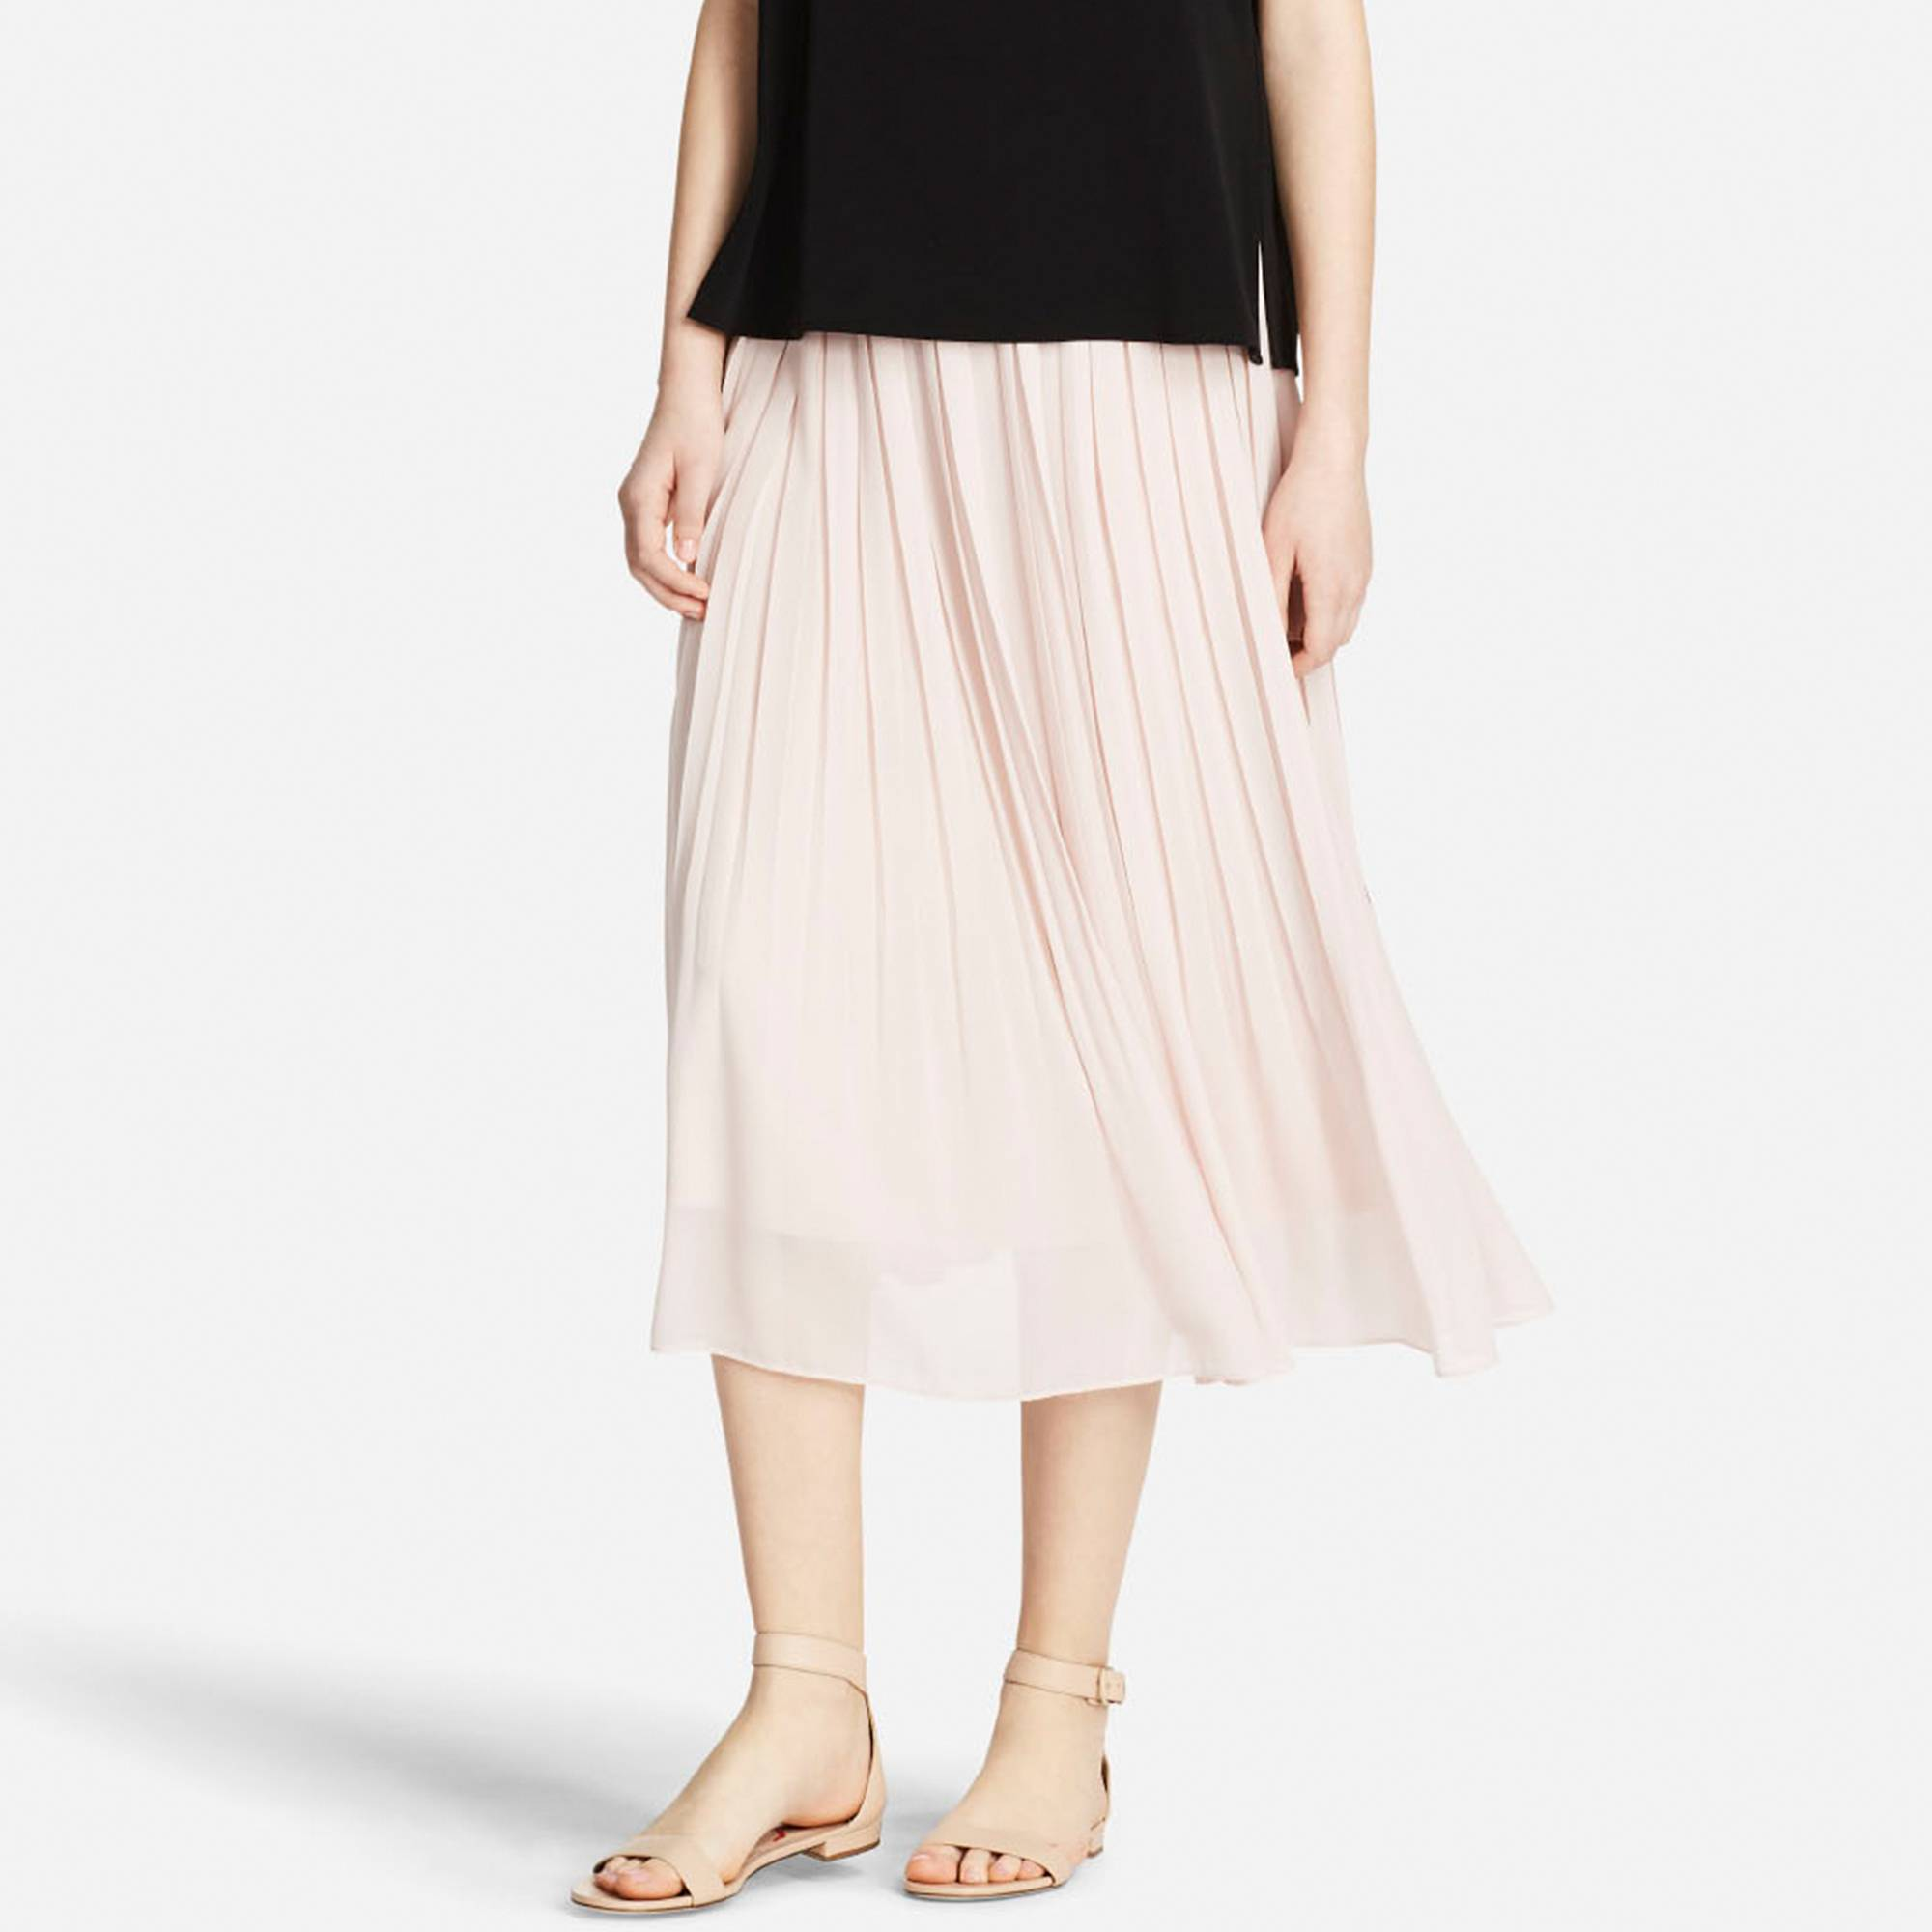 be3100c864 WOMEN HIGH WAIST CHIFFON PLEATED SKIRT